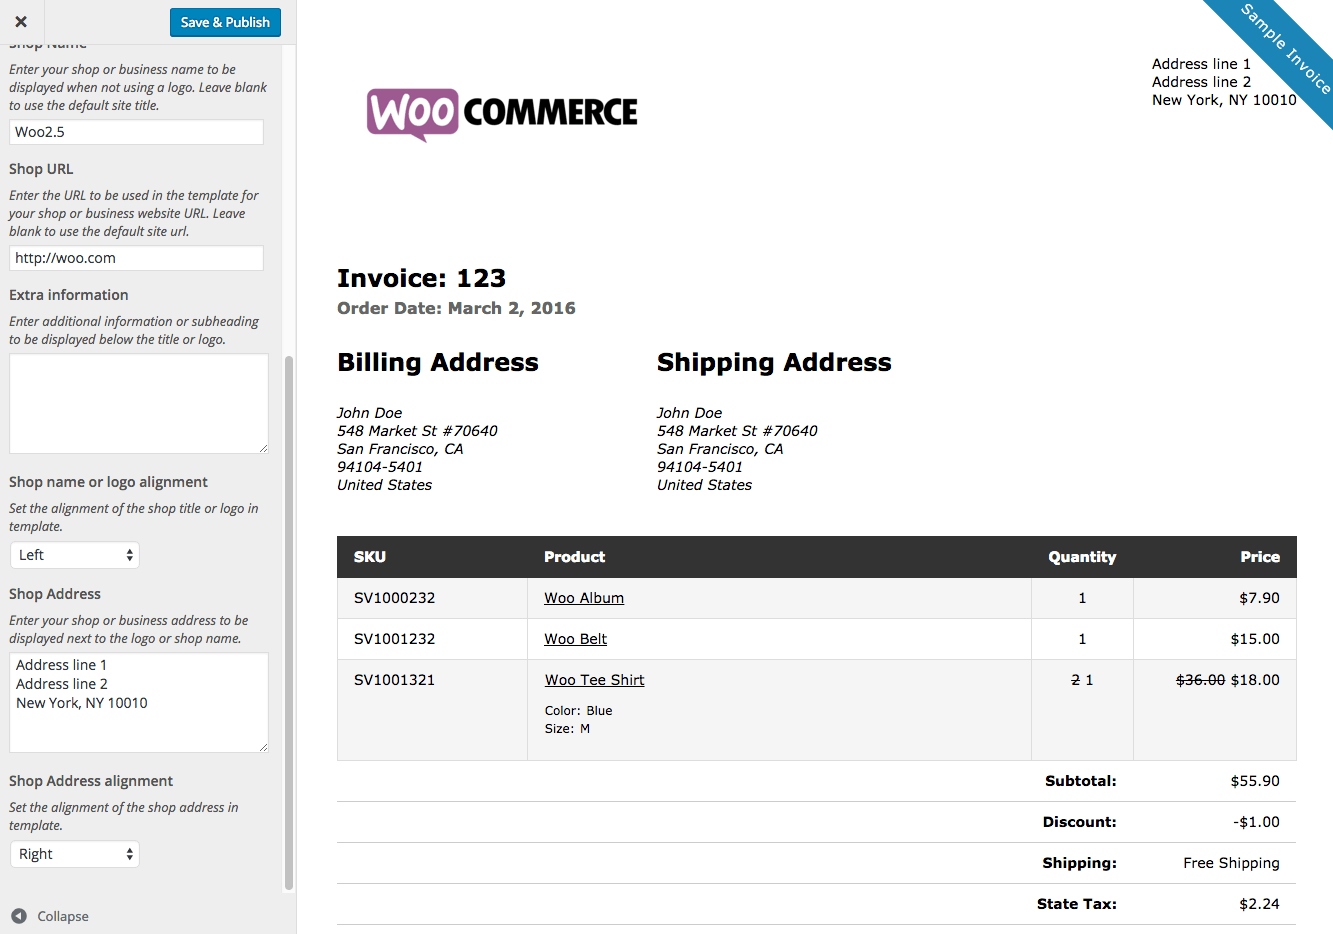 Shopdesignsus  Gorgeous Print Invoices Amp Packing Lists  Woocommerce With Outstanding Woocommerce Print Invoices  Packing Lists Customizer With Archaic Invoicing Factoring Also Define Invoice Discounting In Addition Model Of Invoice And Professional Invoice Templates As Well As Basic Invoice Format Additionally Keeping Track Of Invoices From Woocommercecom With Shopdesignsus  Outstanding Print Invoices Amp Packing Lists  Woocommerce With Archaic Woocommerce Print Invoices  Packing Lists Customizer And Gorgeous Invoicing Factoring Also Define Invoice Discounting In Addition Model Of Invoice From Woocommercecom